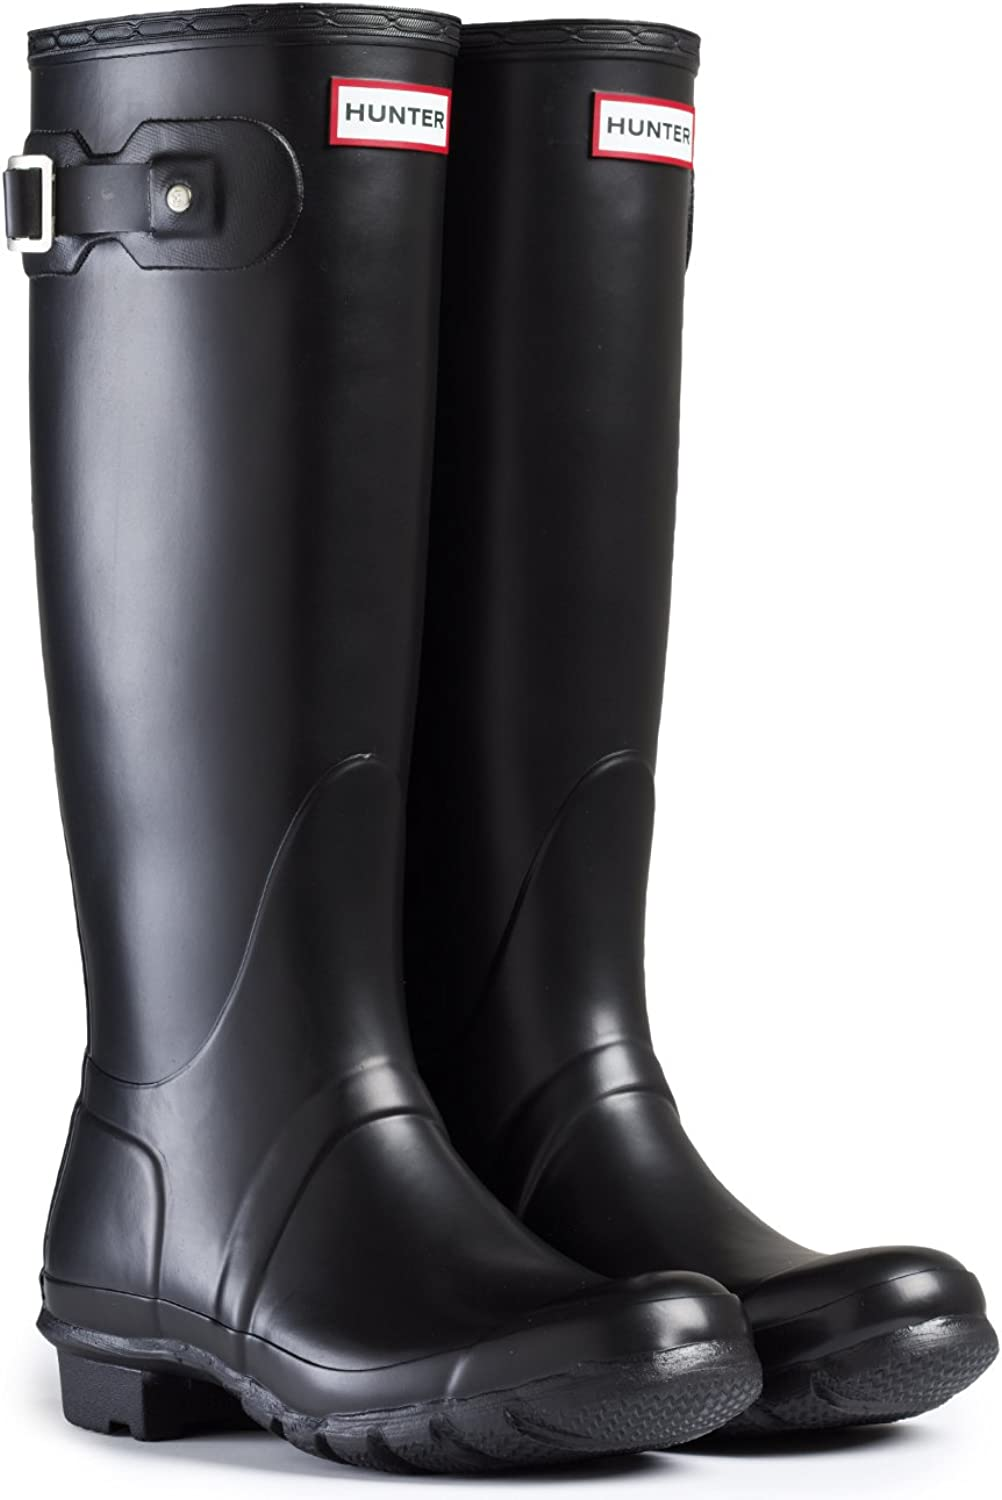 Hunter Women's Original Tall Rain Boot (9 M US, Black Matt)